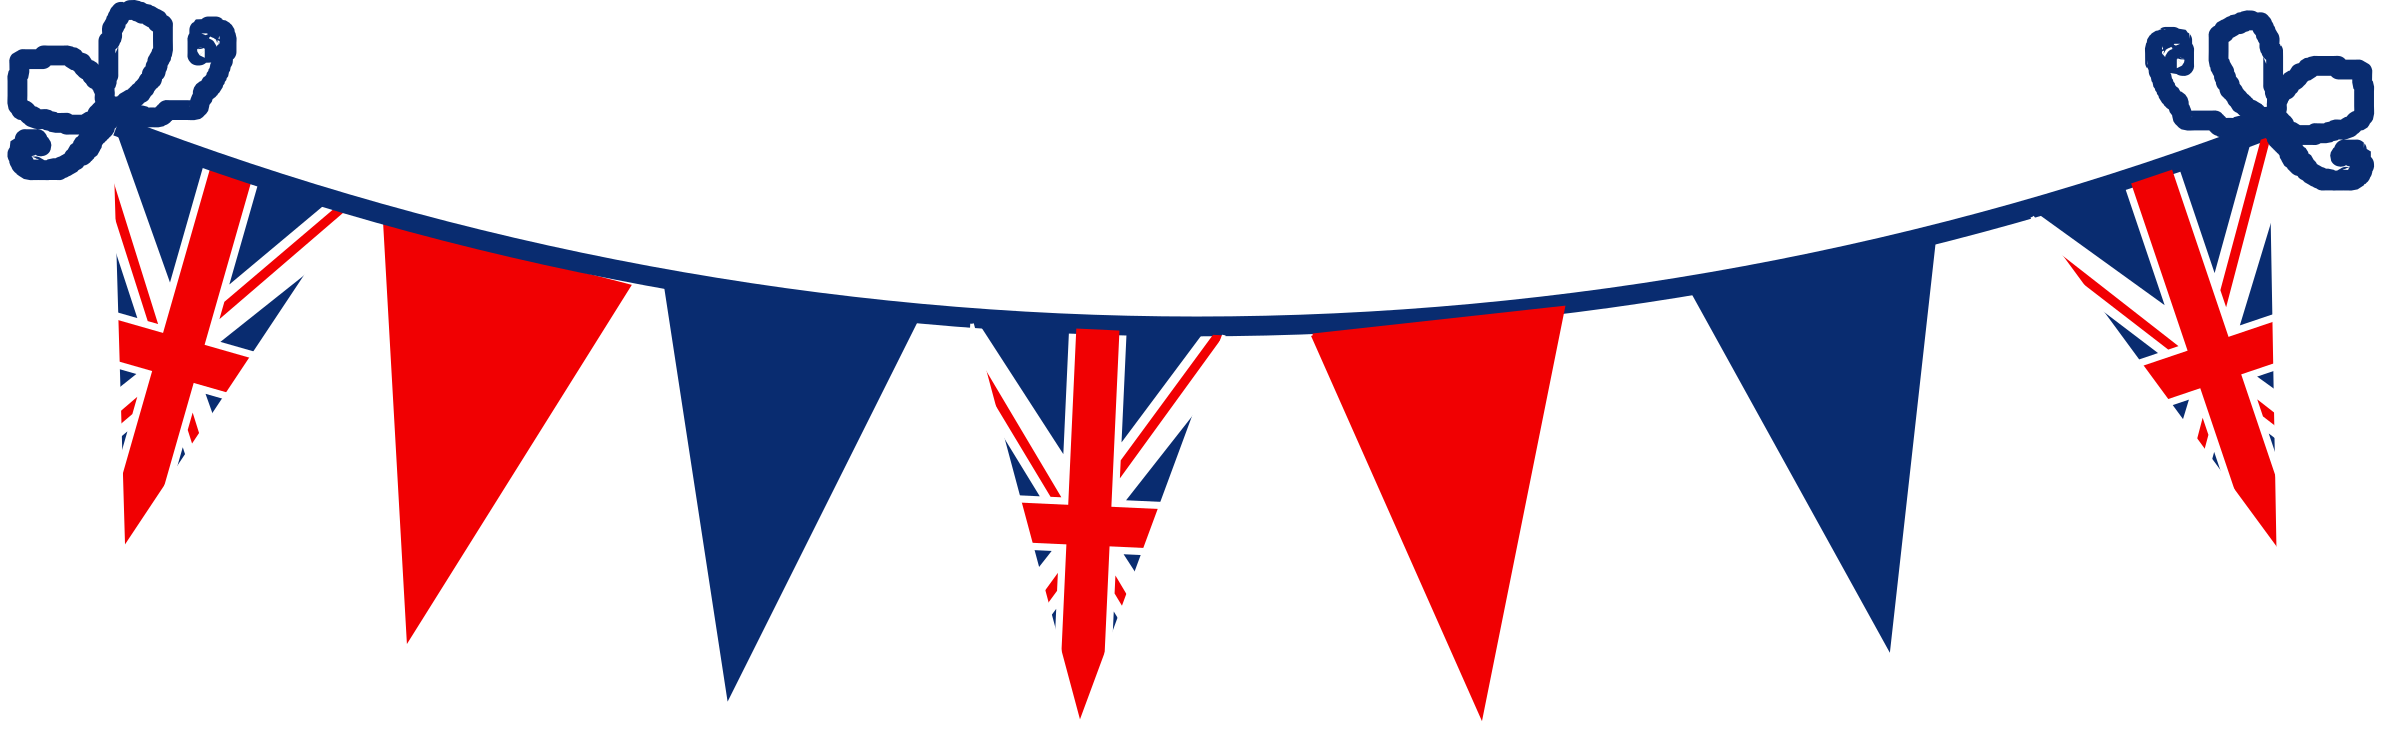 Jubilee bunting by mr_johnnyp